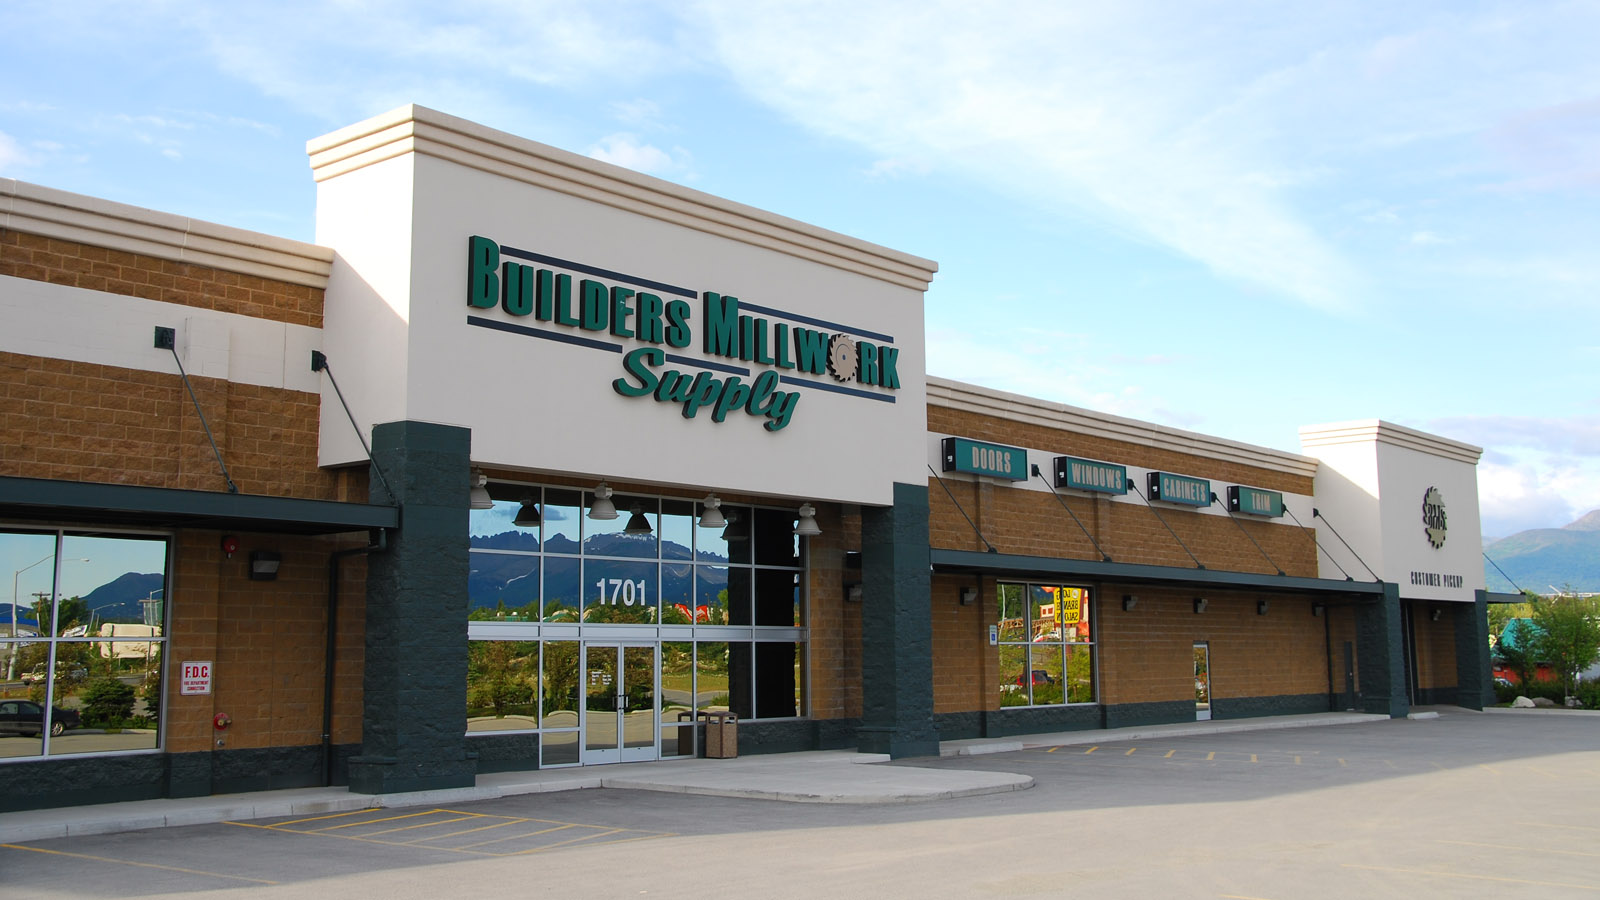 Anchorage Builders Millwork Supply